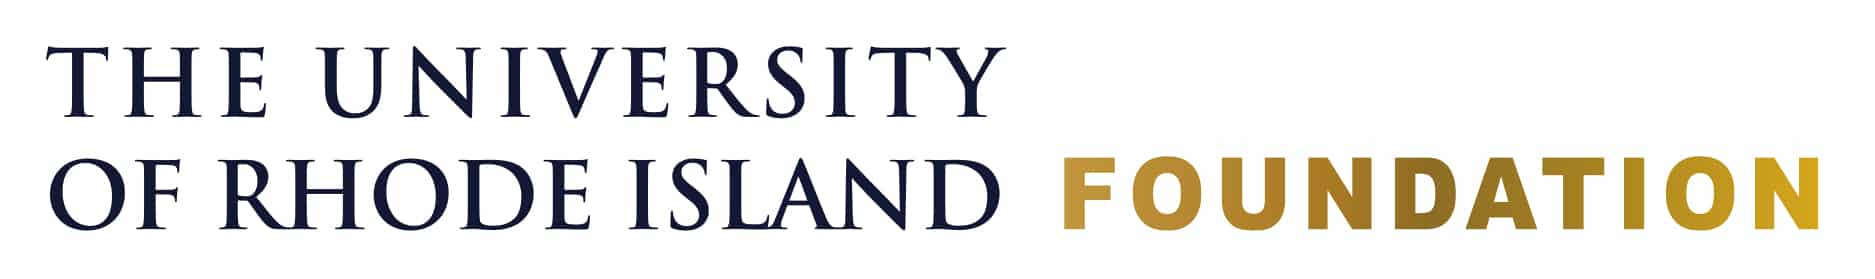 University of Rhode Island Foundation Logo